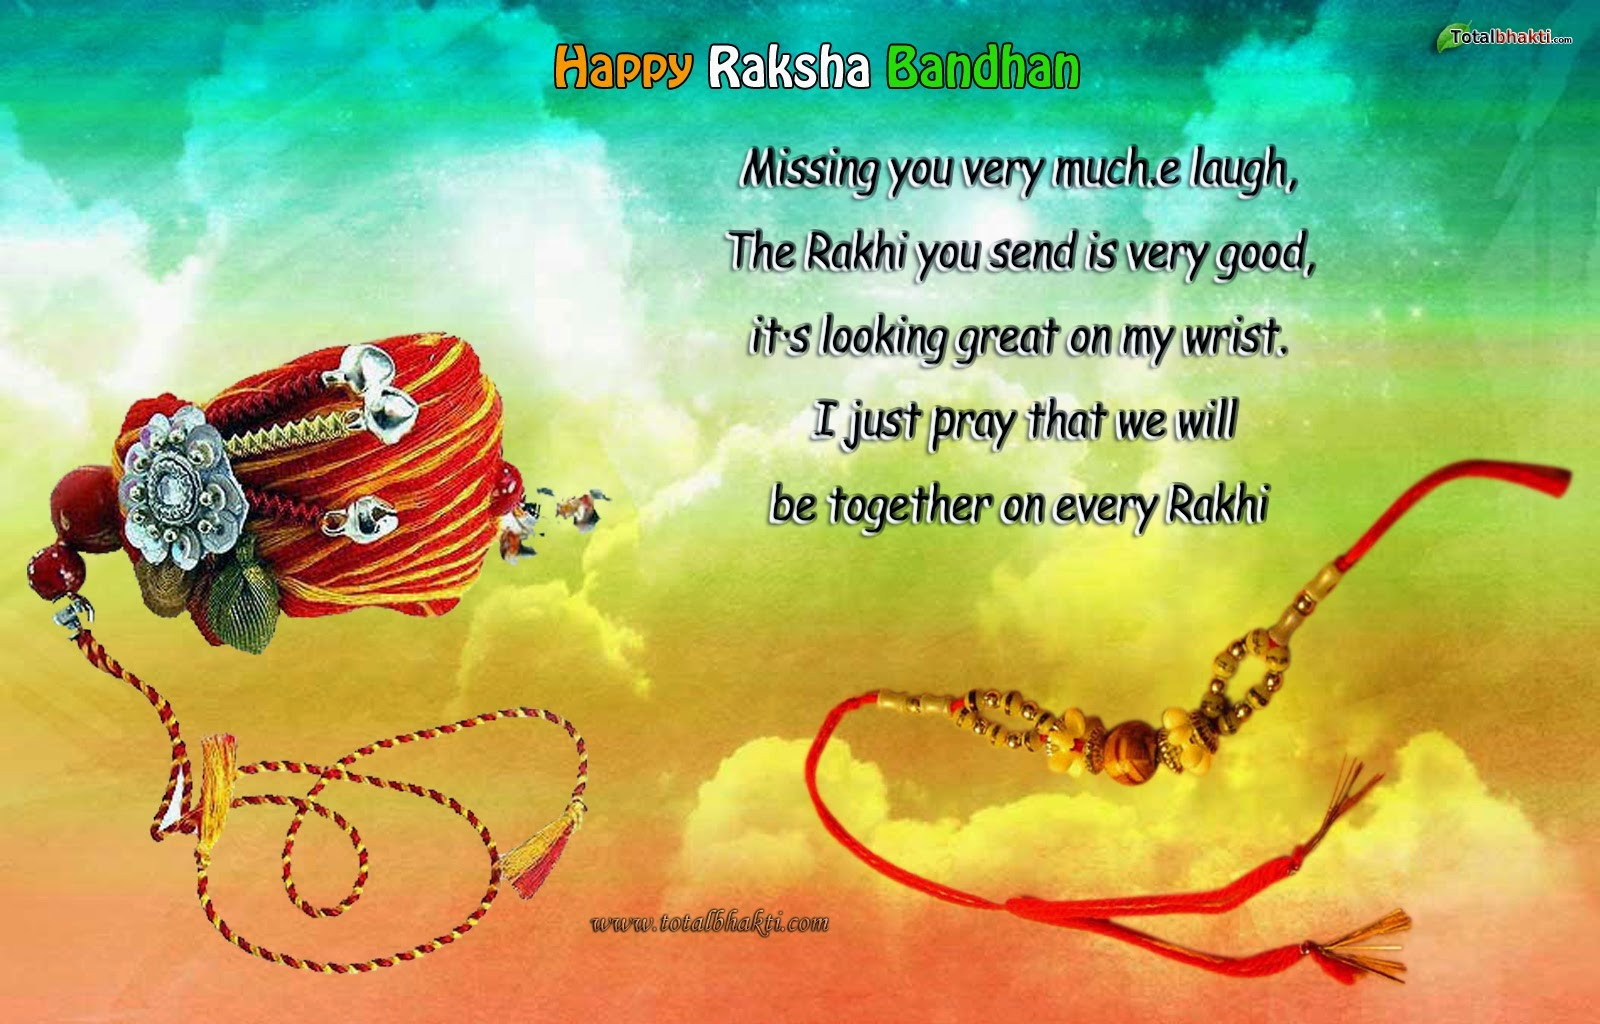 Top sms wishes and pics for brothers and sisters on the ...